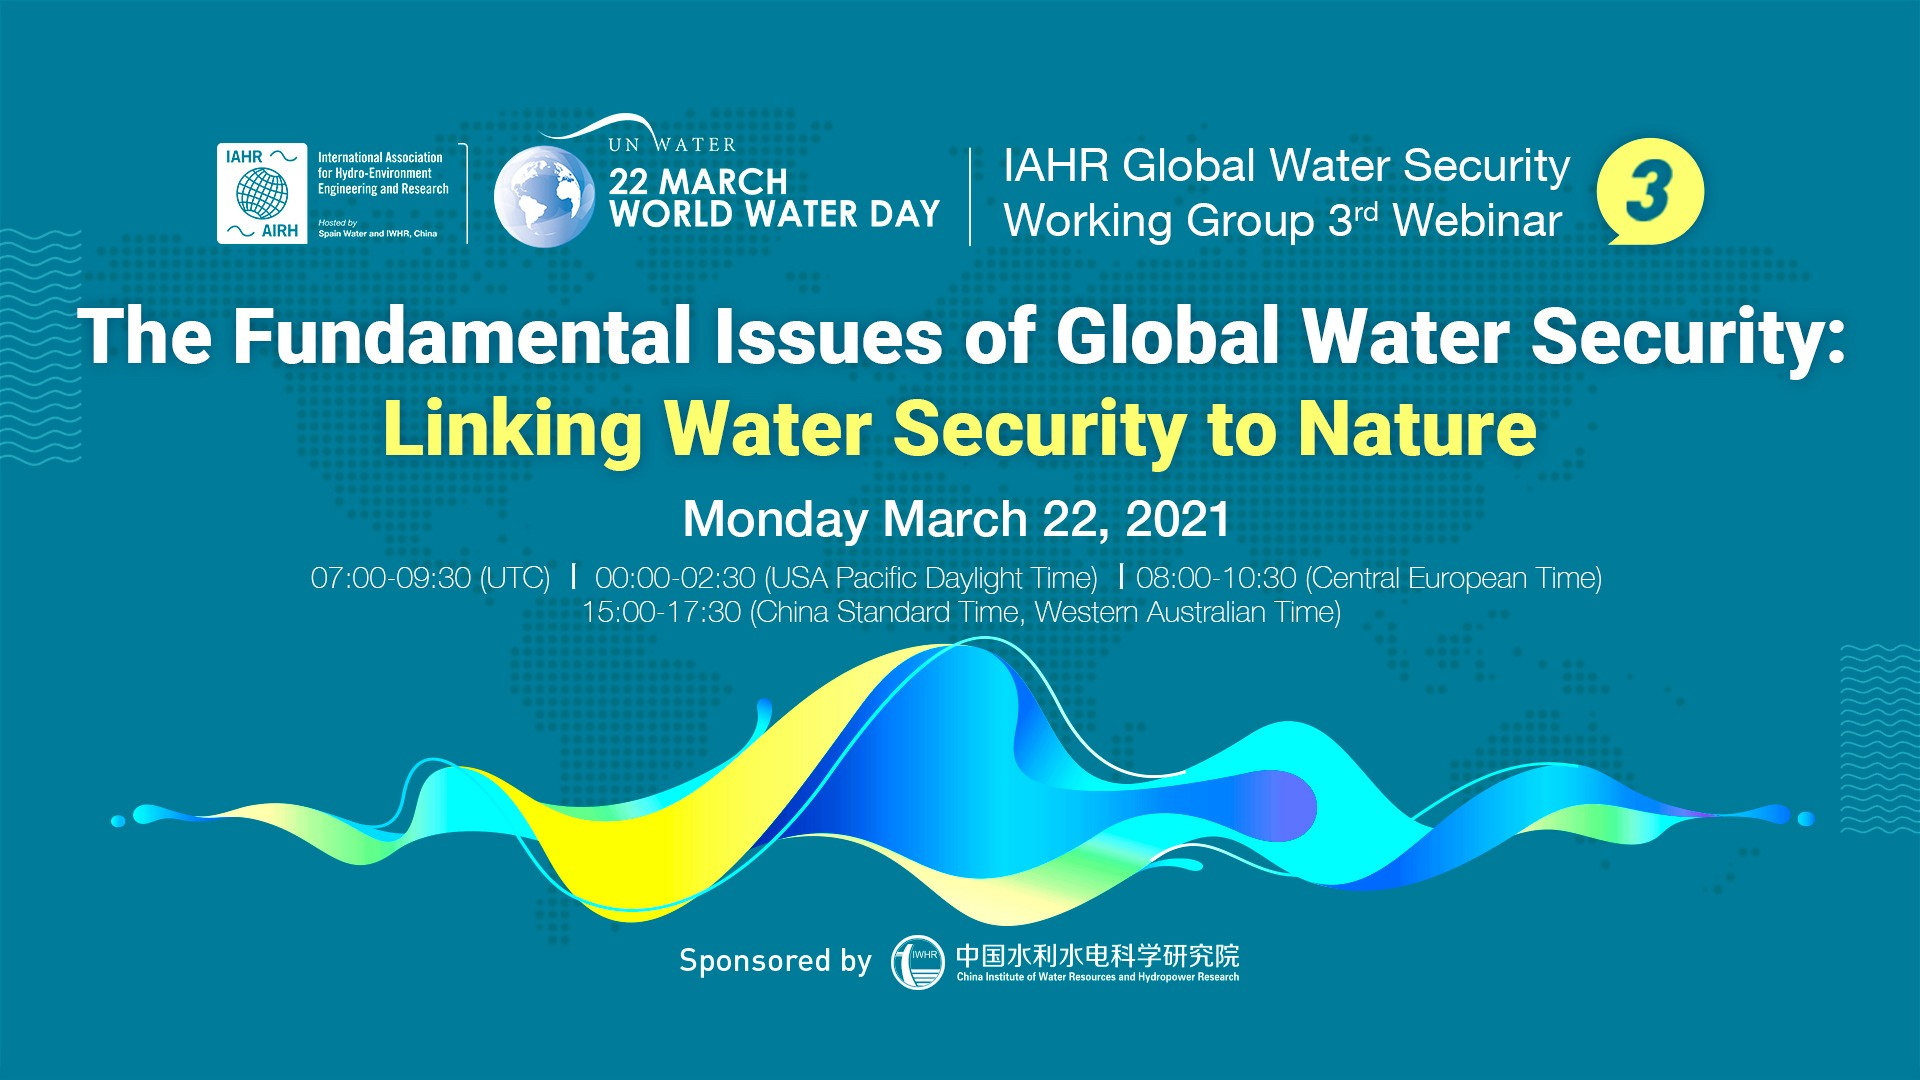 The-Business-of-Global-Water-Security--Linking-Knowledge-to-Practice-1920-1080-compressed.jpg